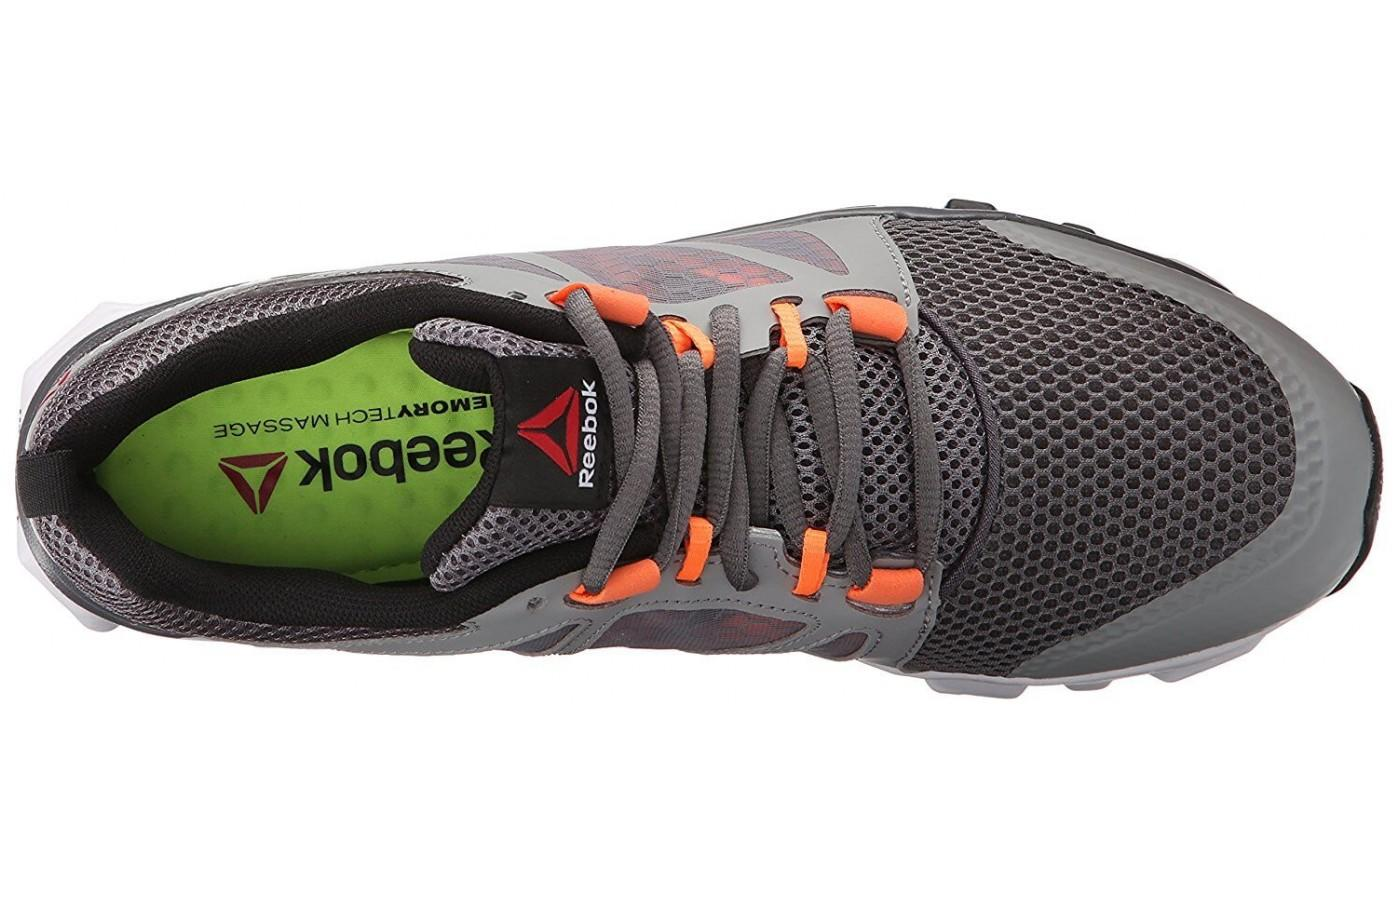 The cage around the midfoot adds support to the runner.